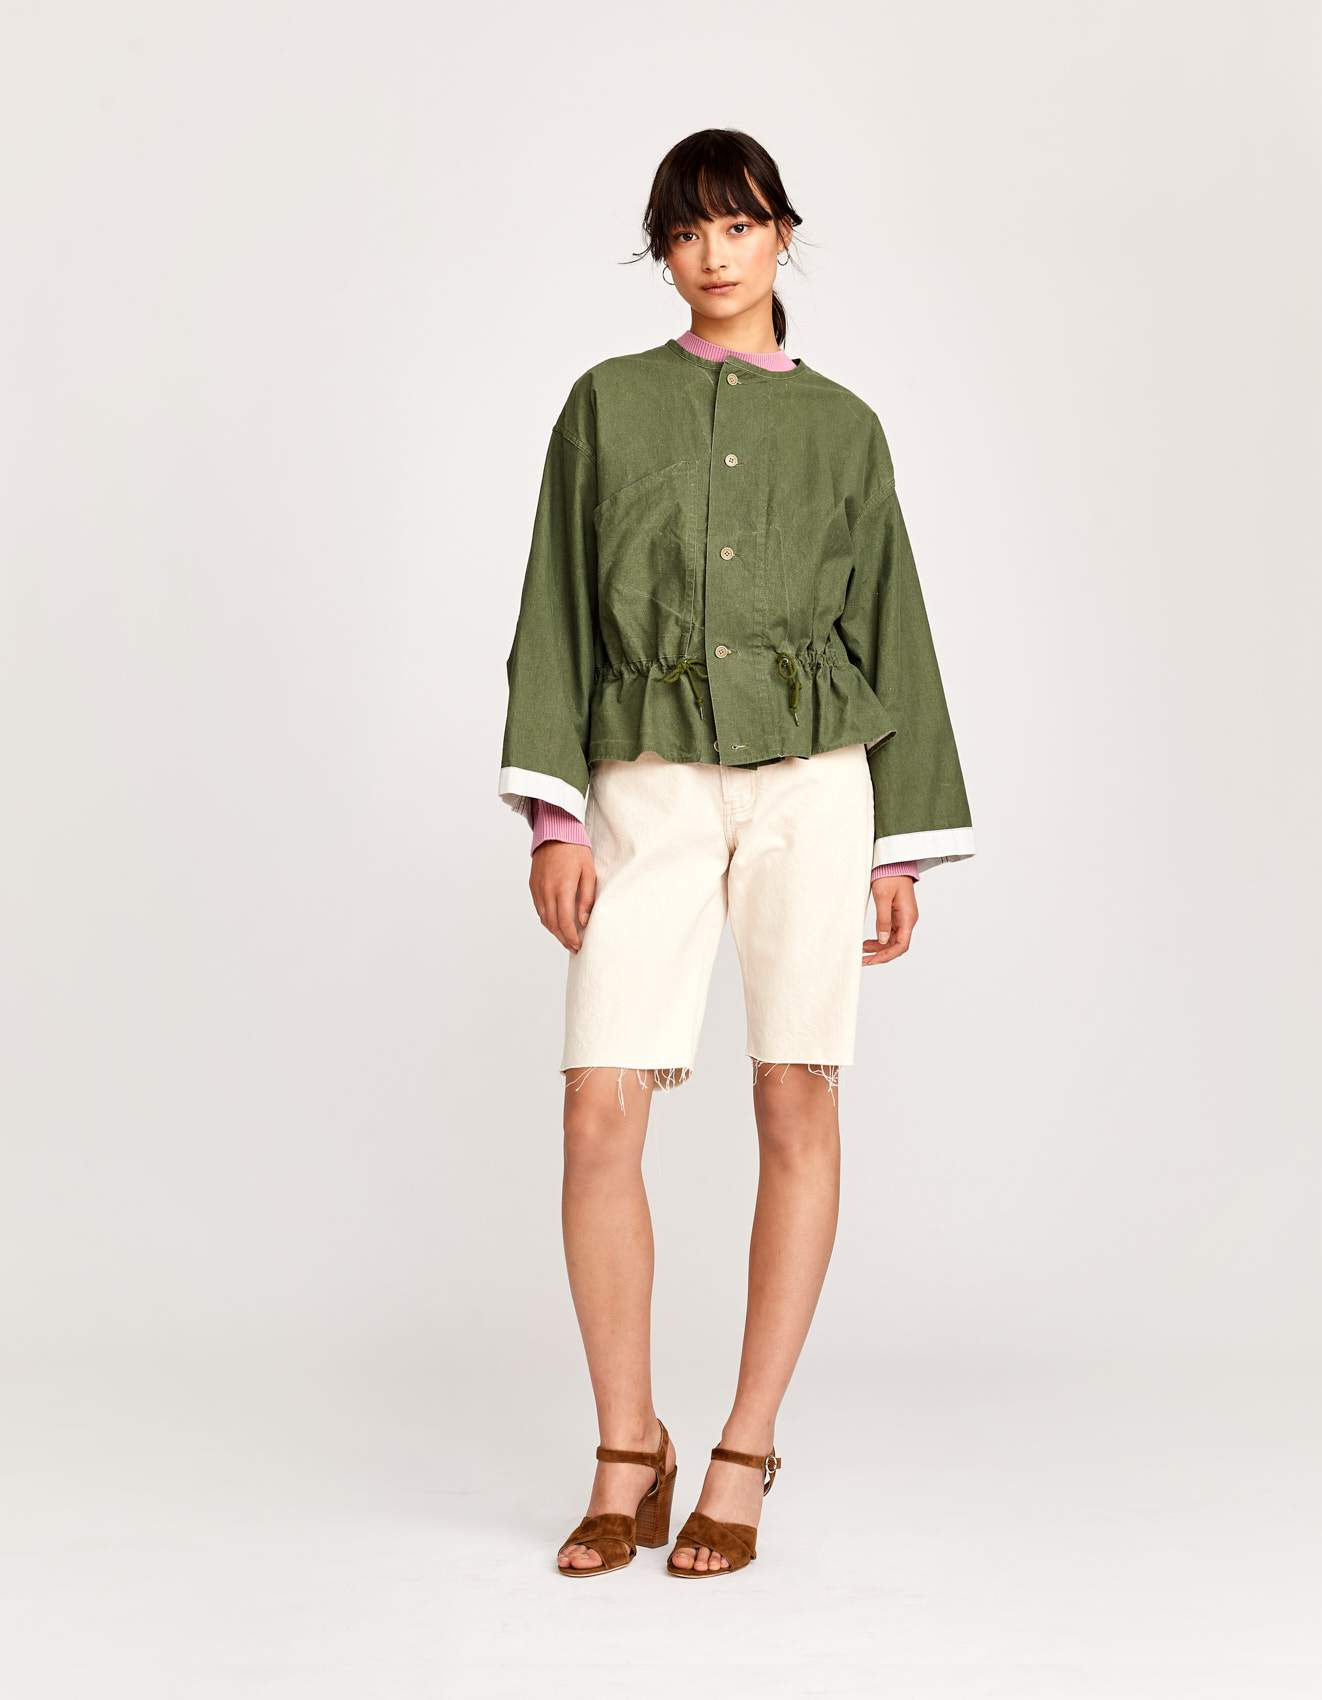 Bellerose vintage green military style jacket for women